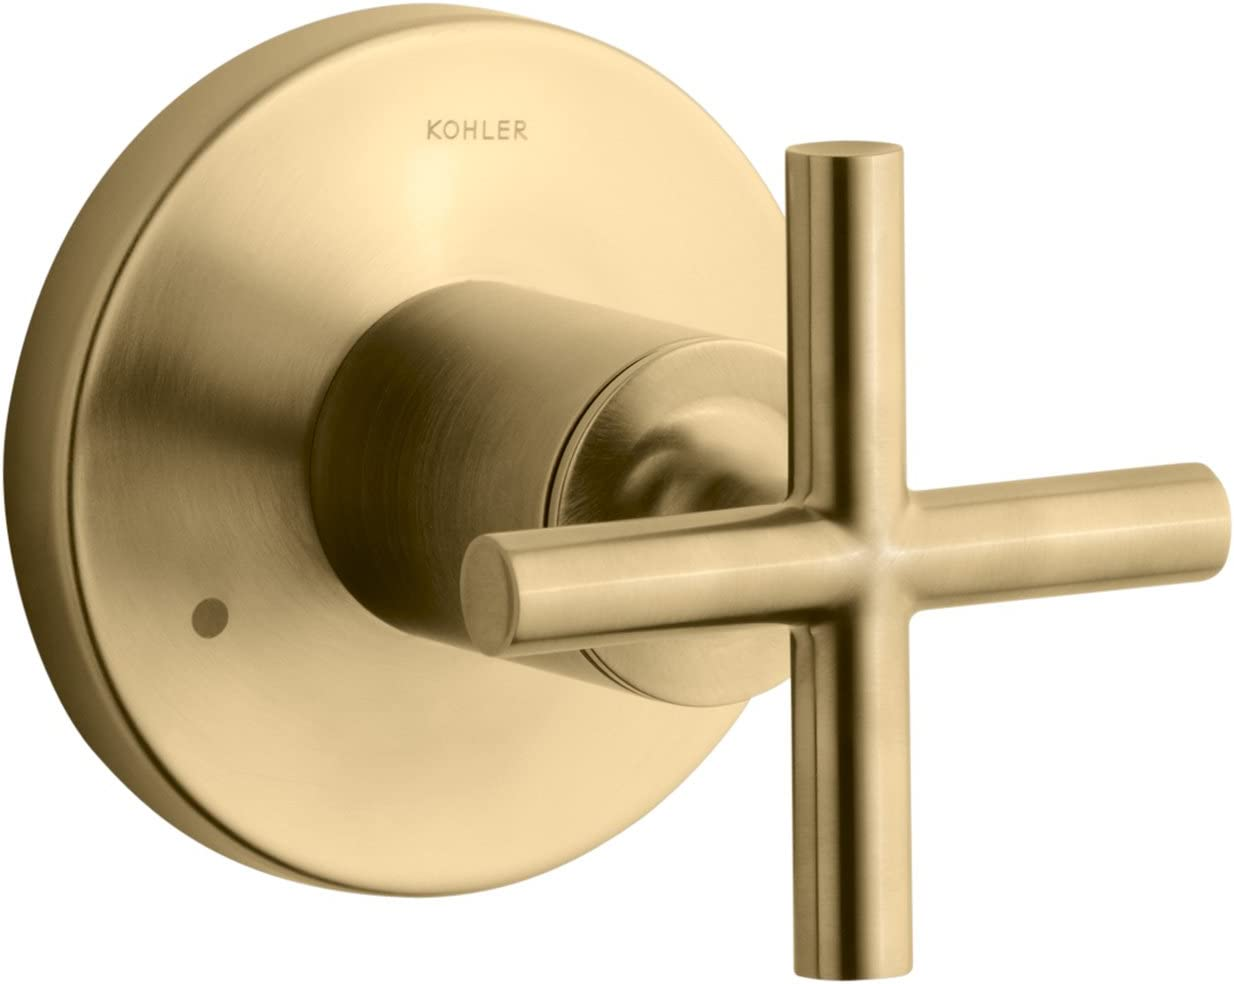 Kohler K T14491 3 Bgd Purist Transfer Valve Trim With Cross Handle Valve Not Included Vibrant Moderne Brushed Gold Single Handle Tub And Shower Faucets Amazon Com